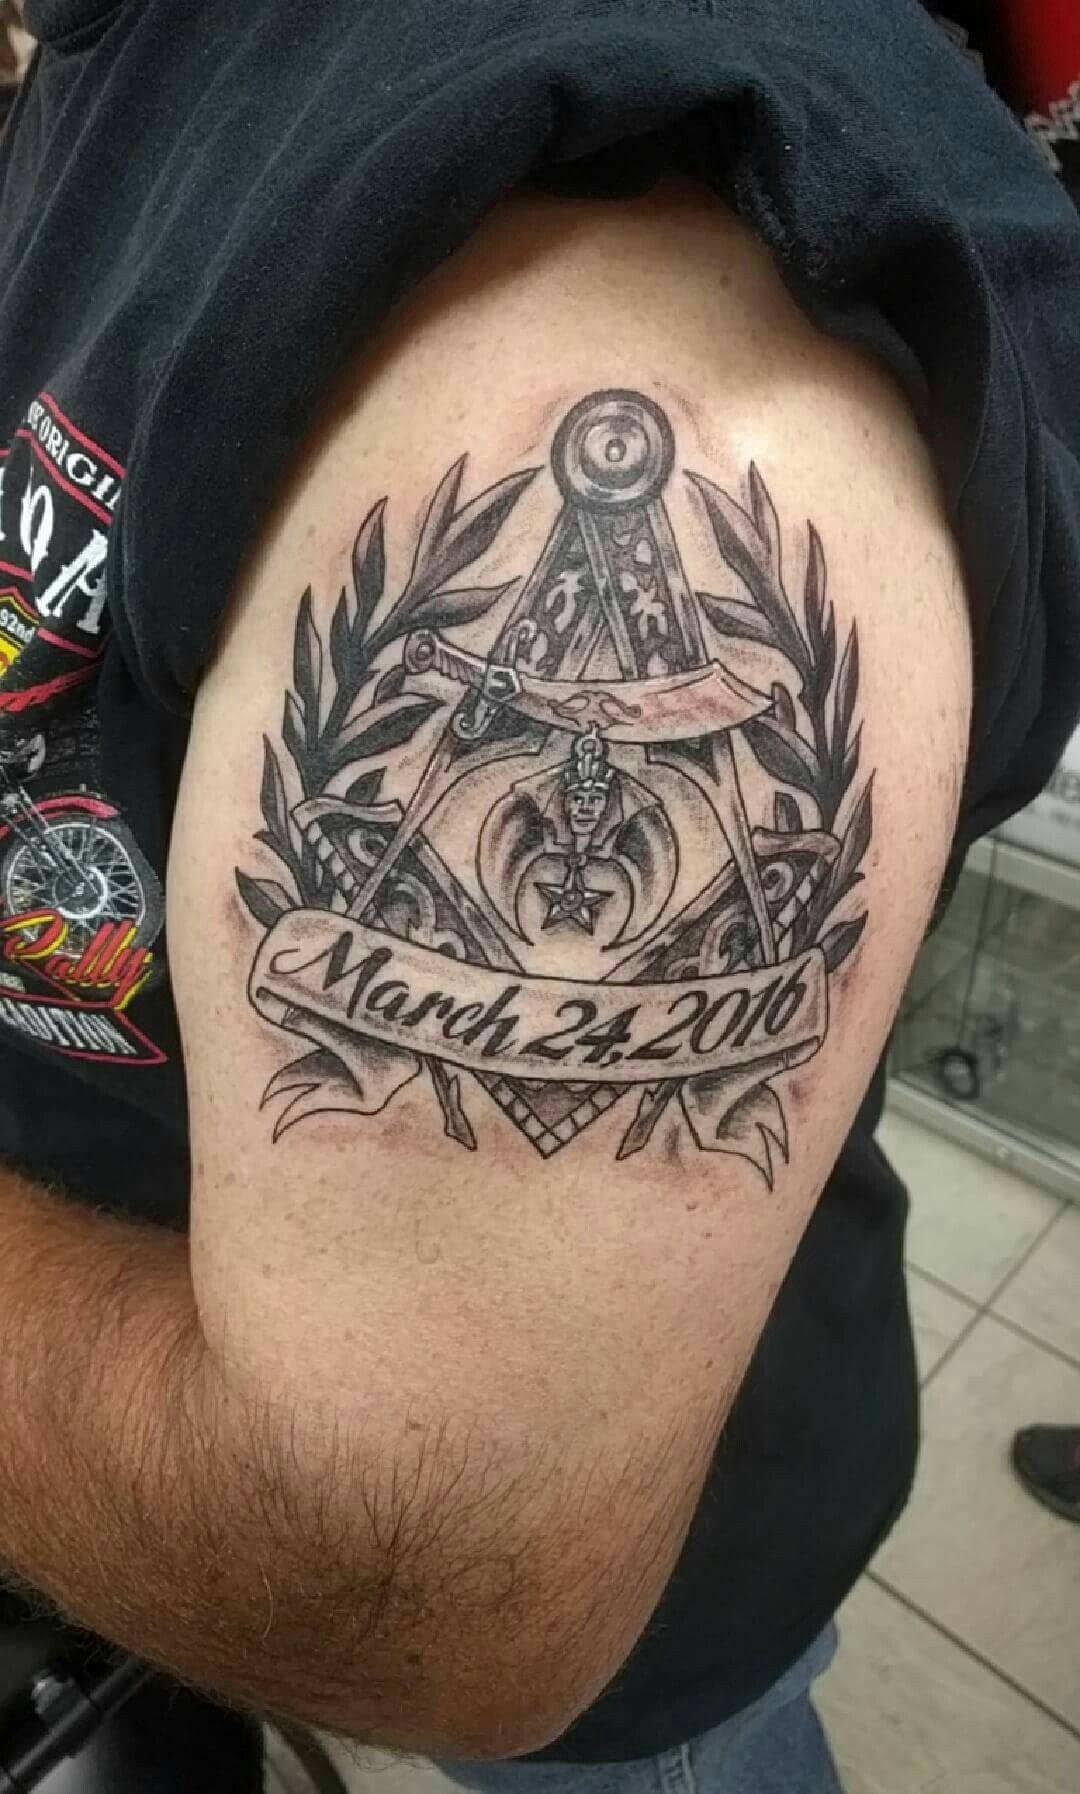 Very proud of the meaning of this tattoo  | Masonic /G